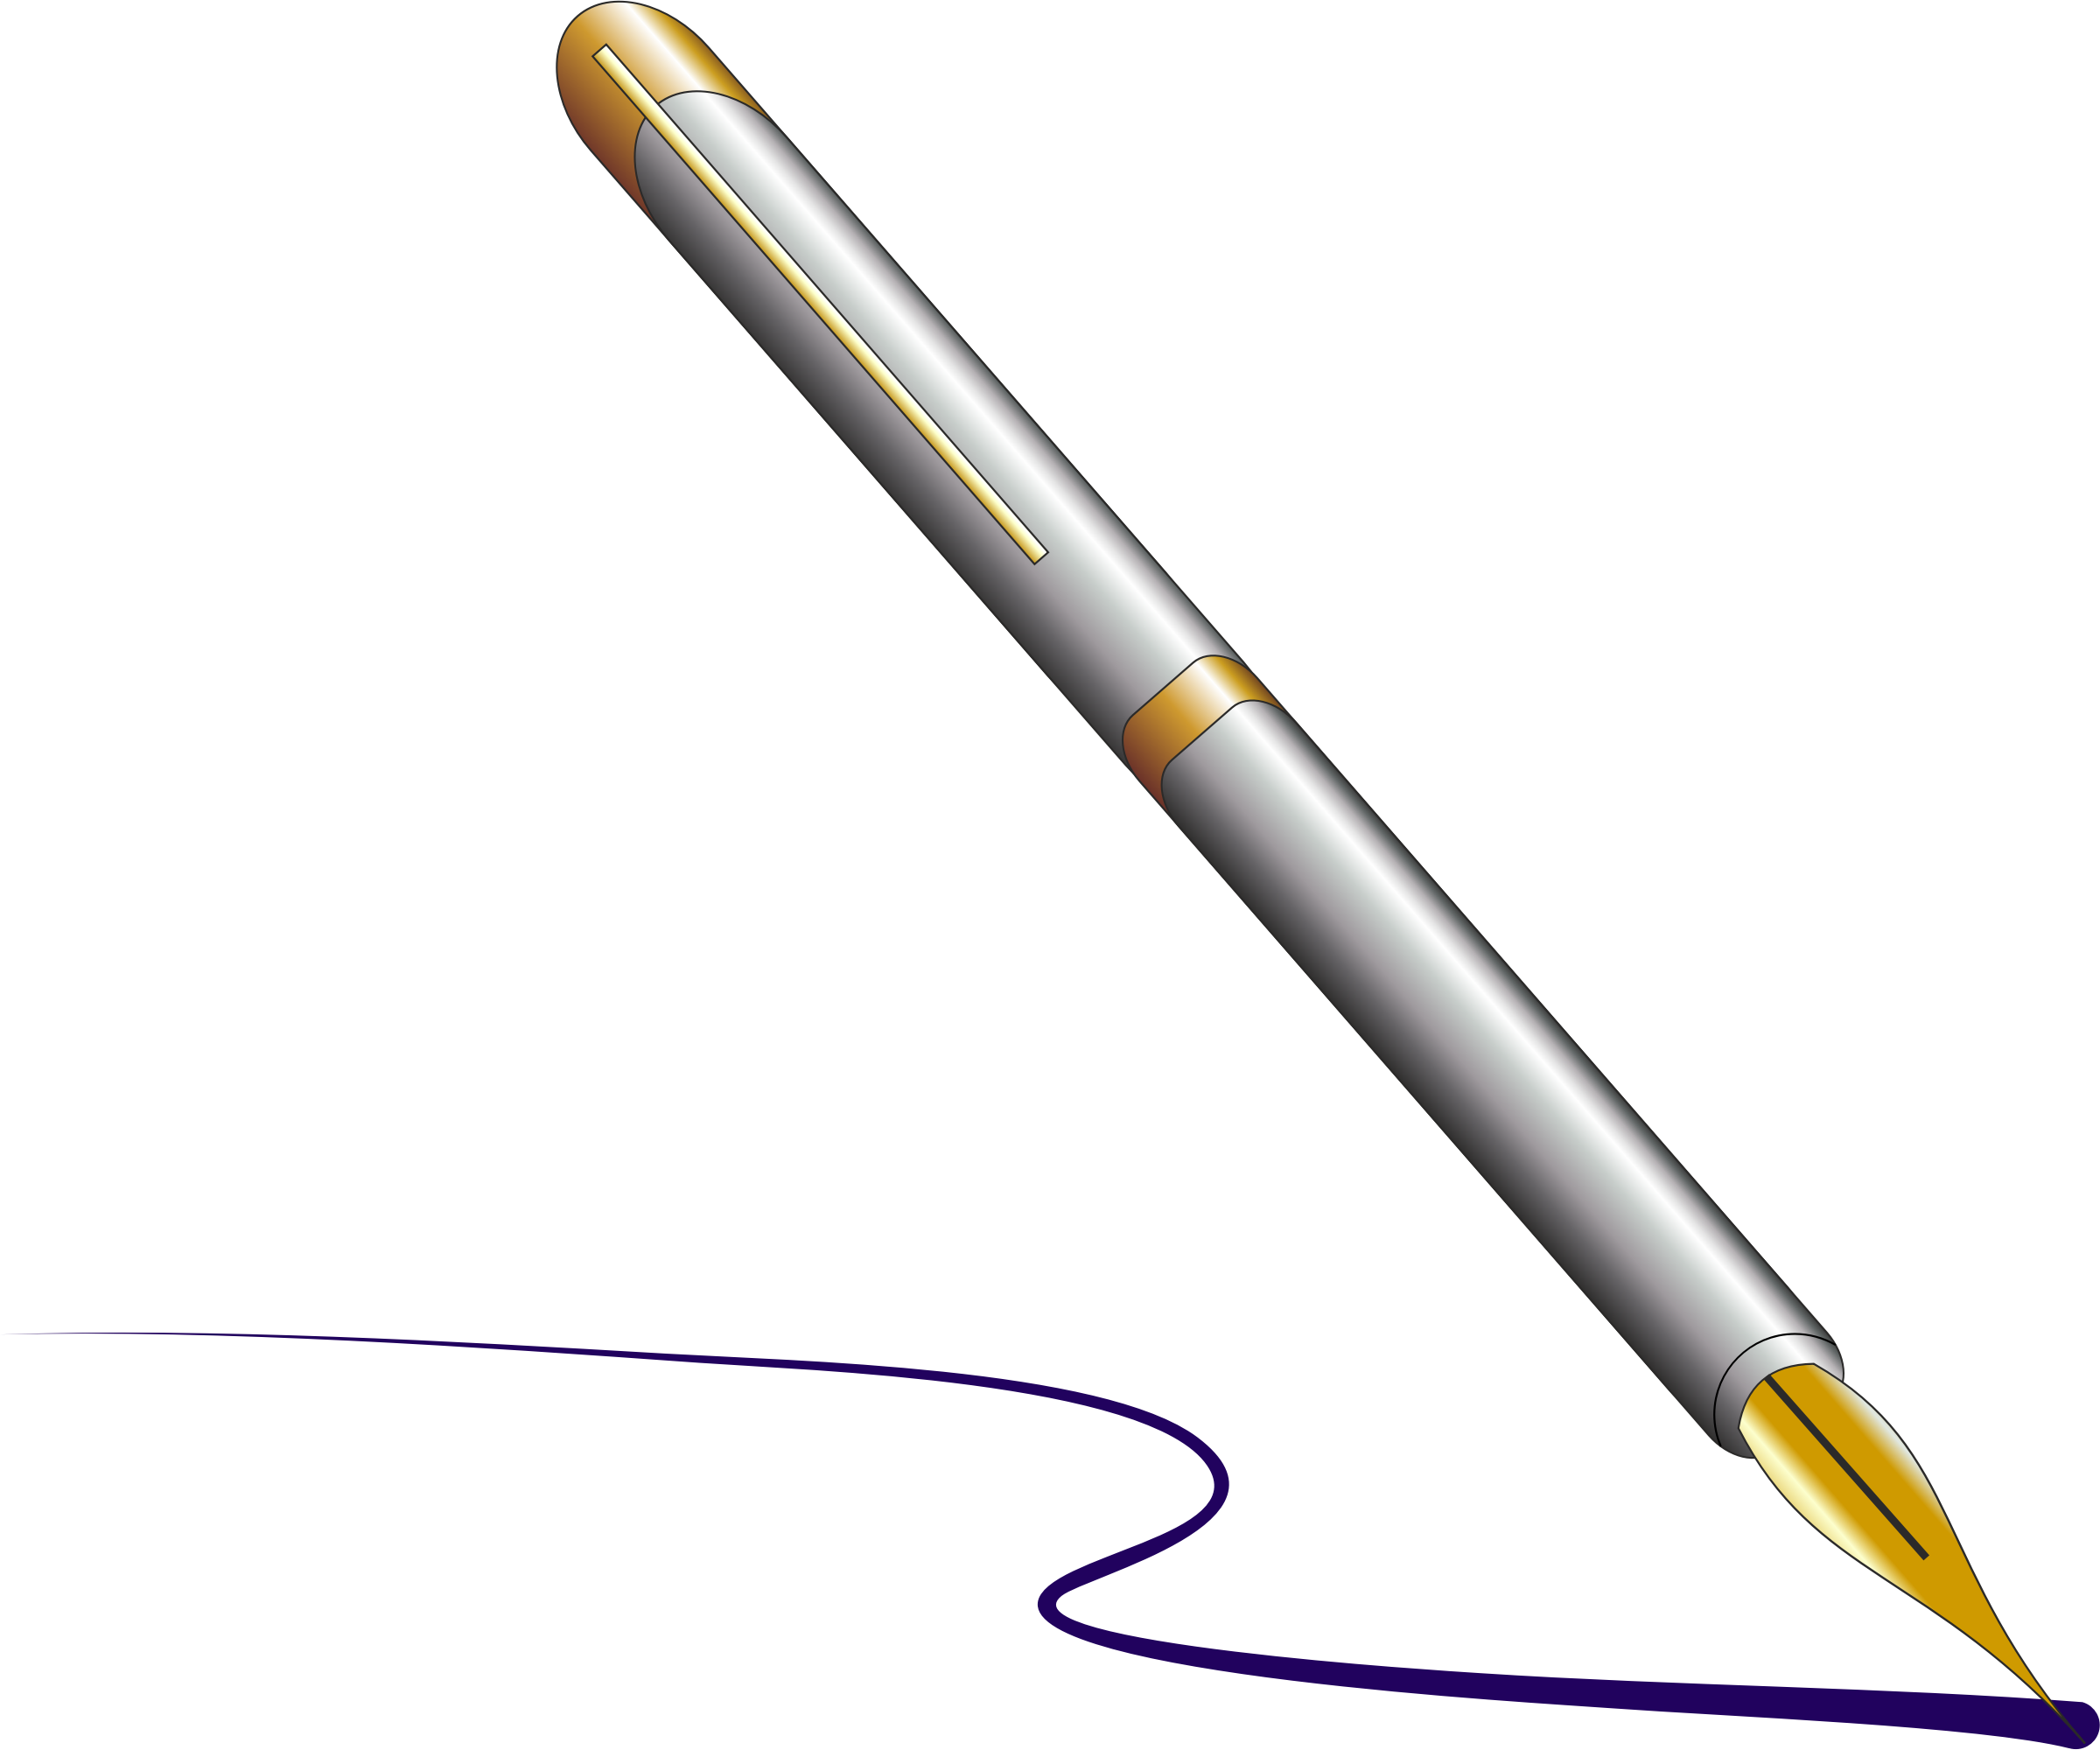 Pen PNG Transparent Image image #43193